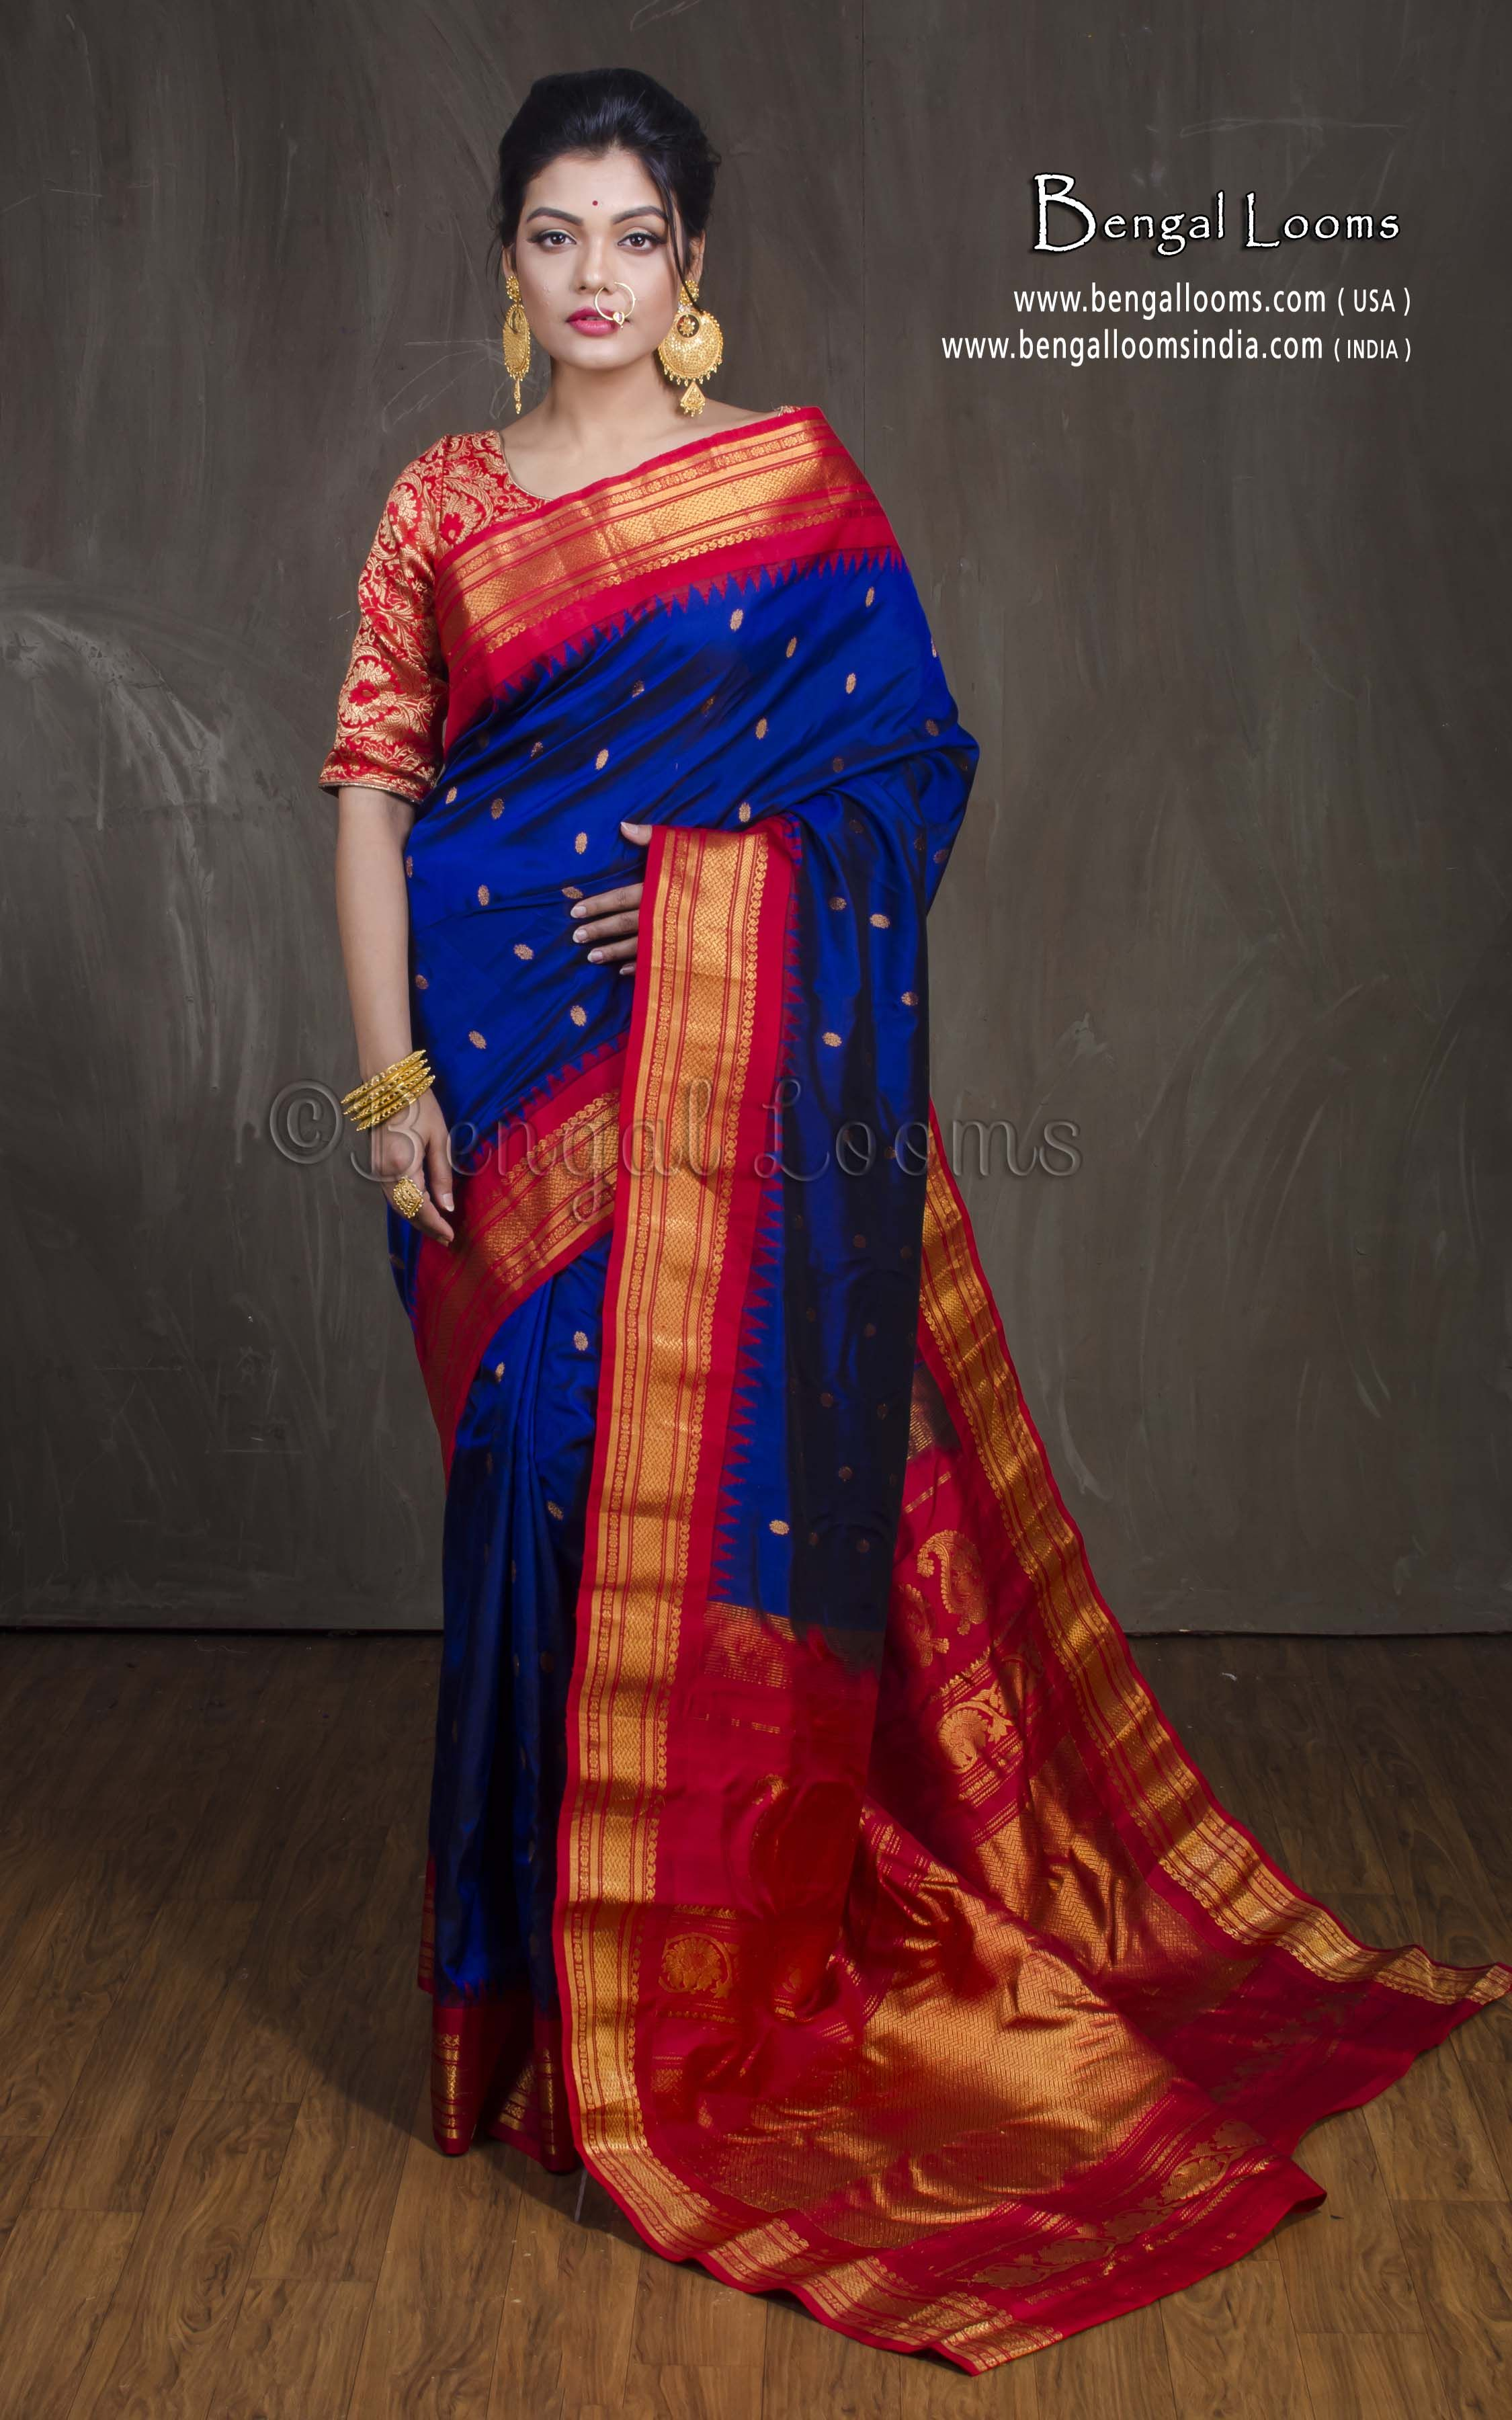 b49bcb0a4d Premium Quality Gadwal Silk Saree in Dark Blue and Red. Website :-  www.bengallooms.com